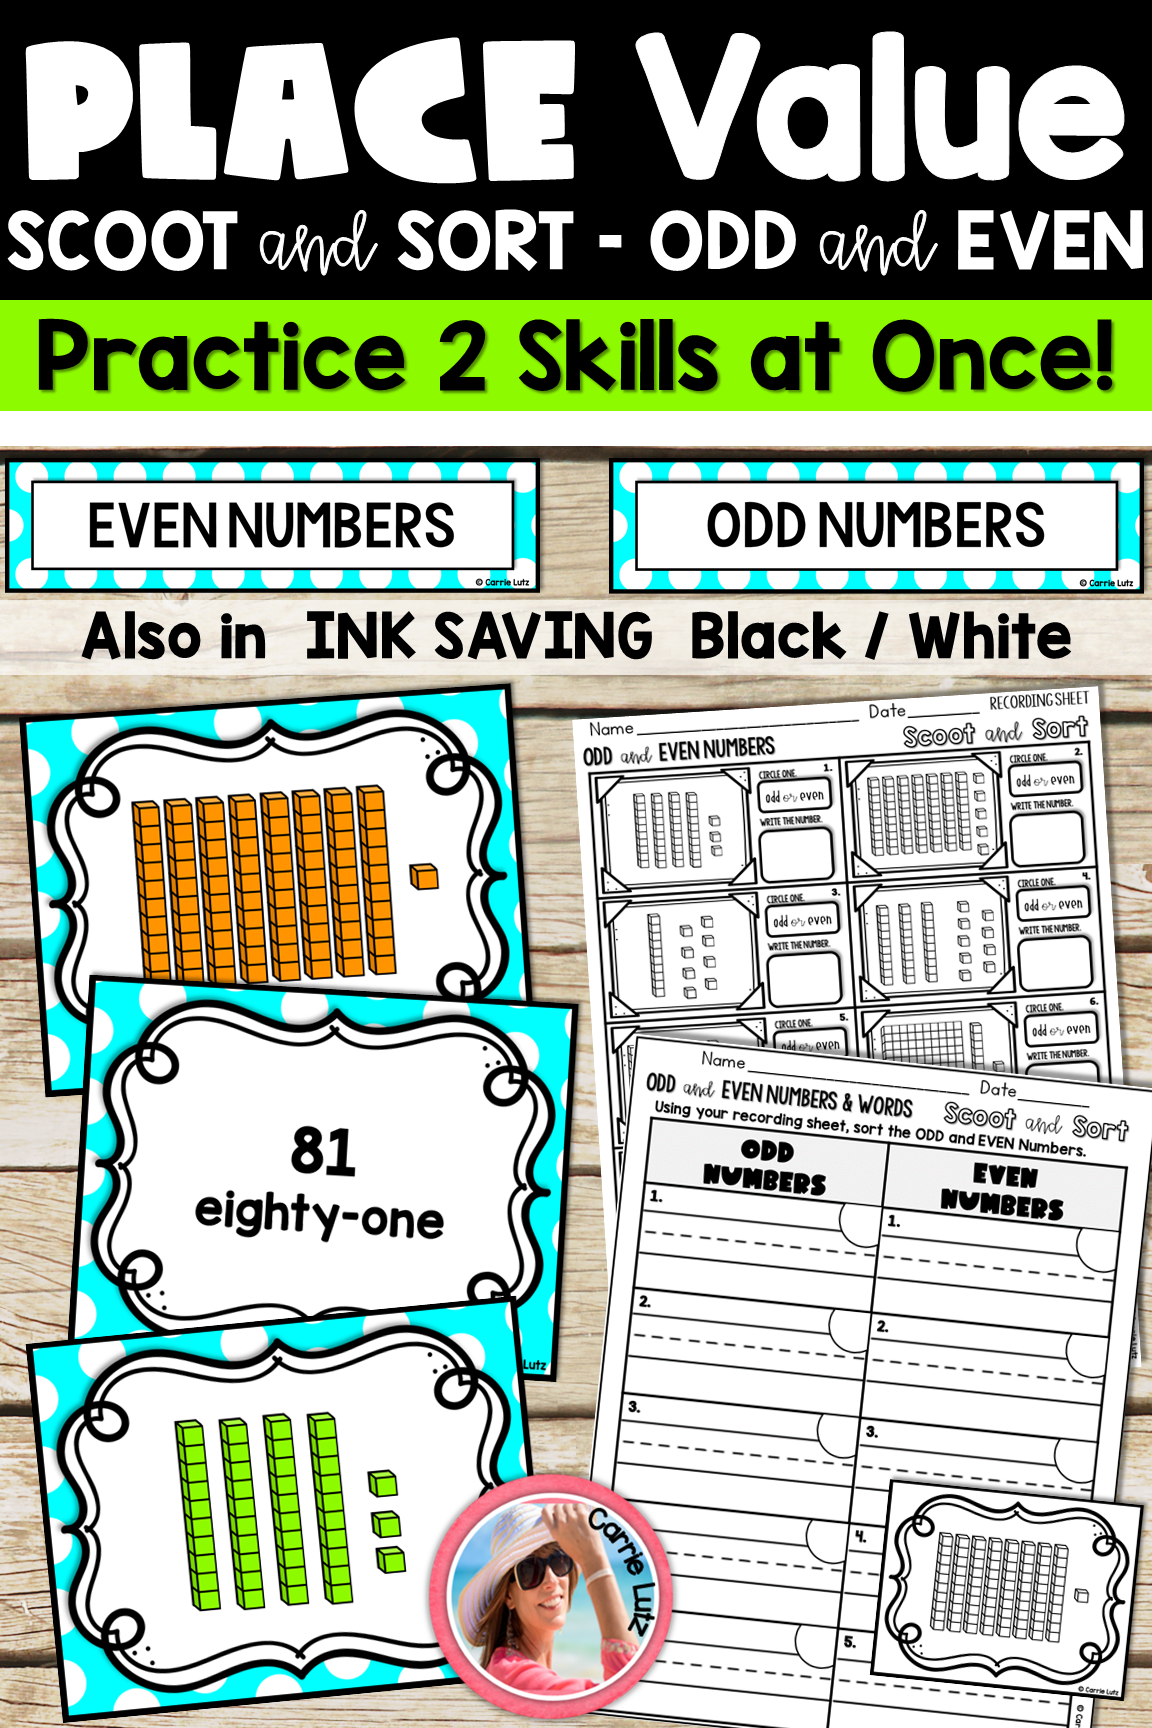 Place Value Scoot And Sort